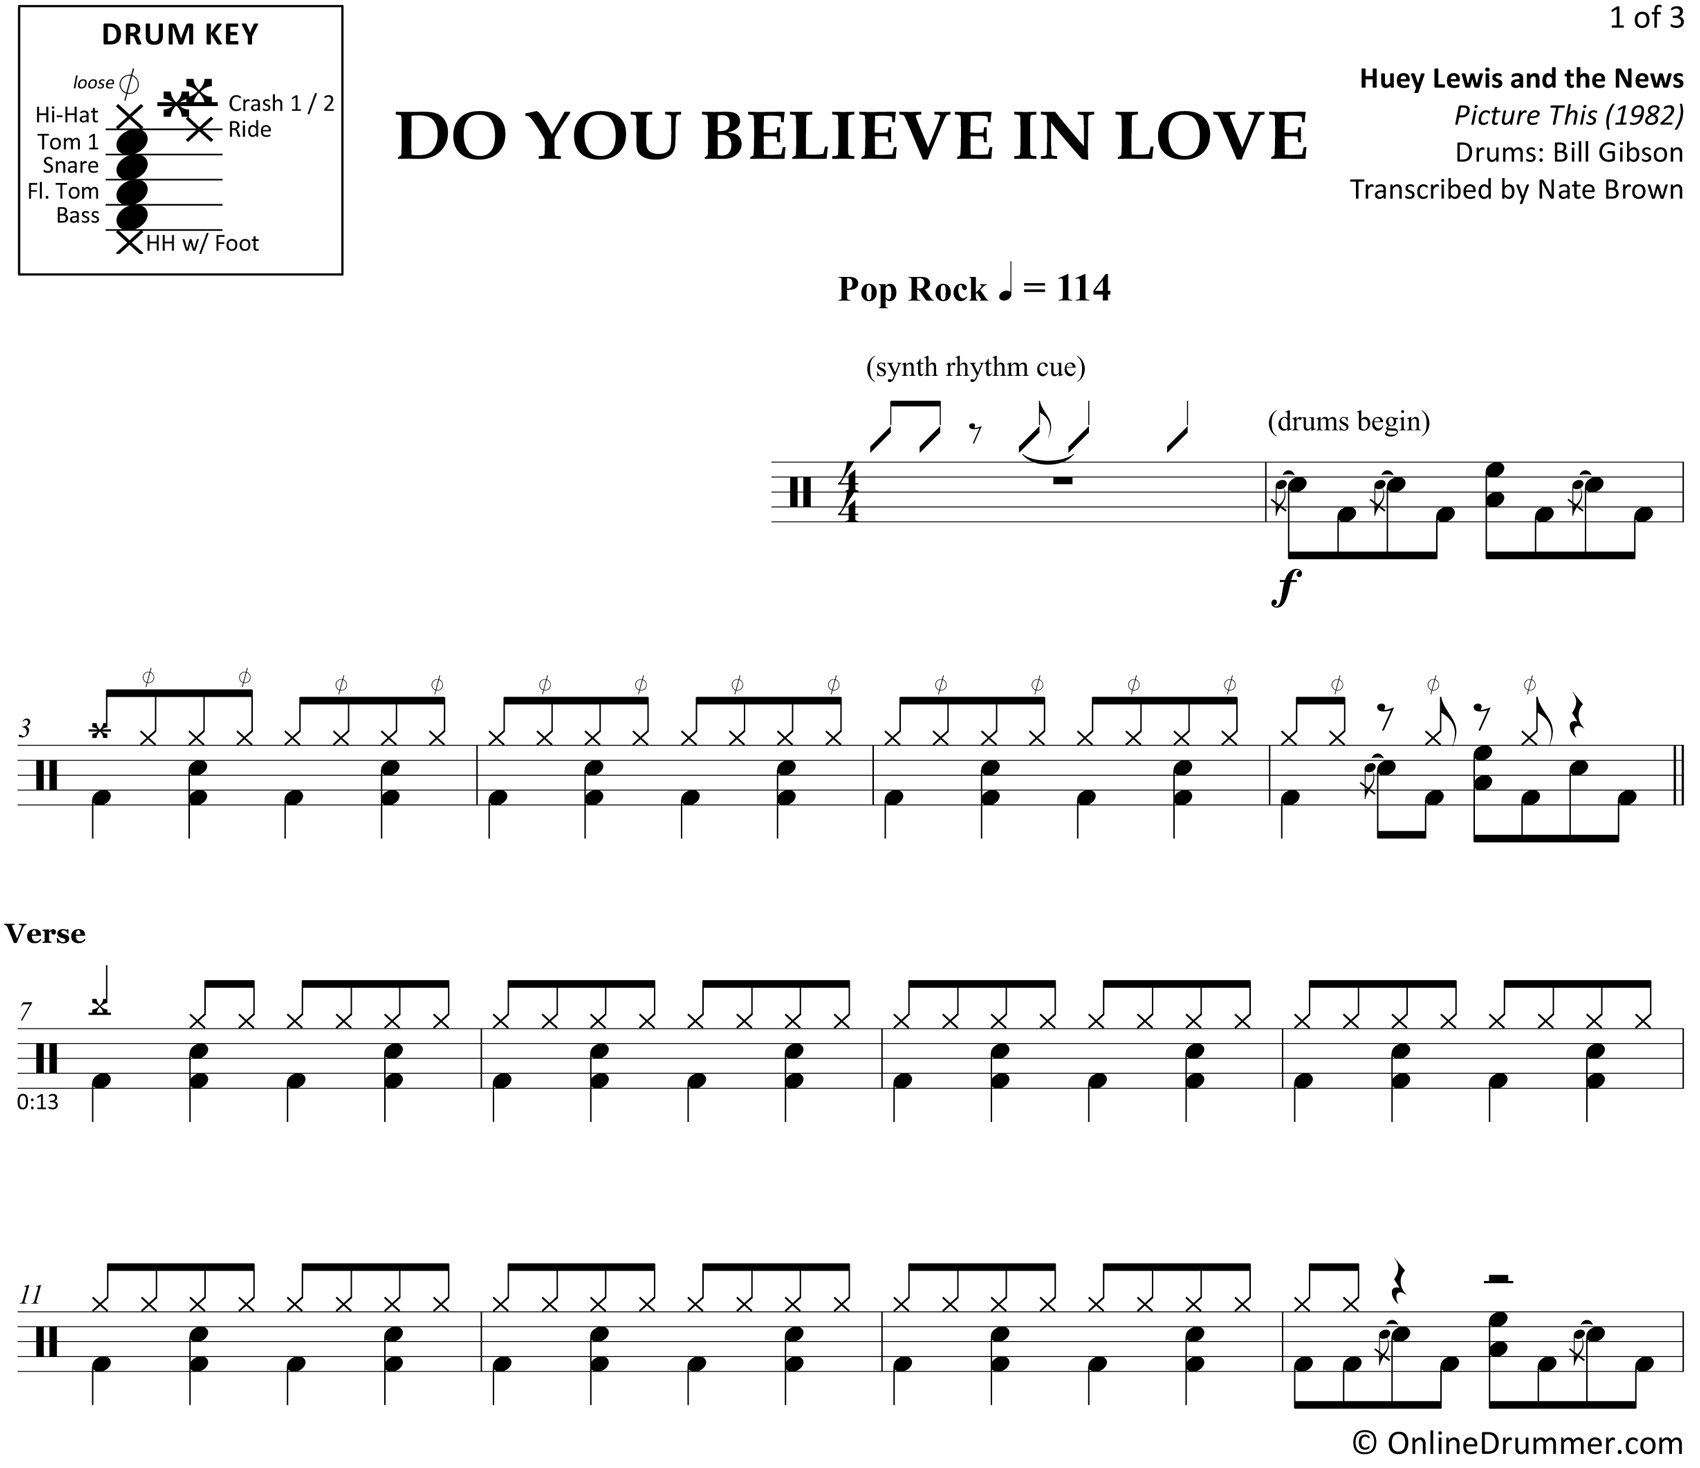 Do You Believe in Love - Huey Lewis and the News - Drum Sheet Music